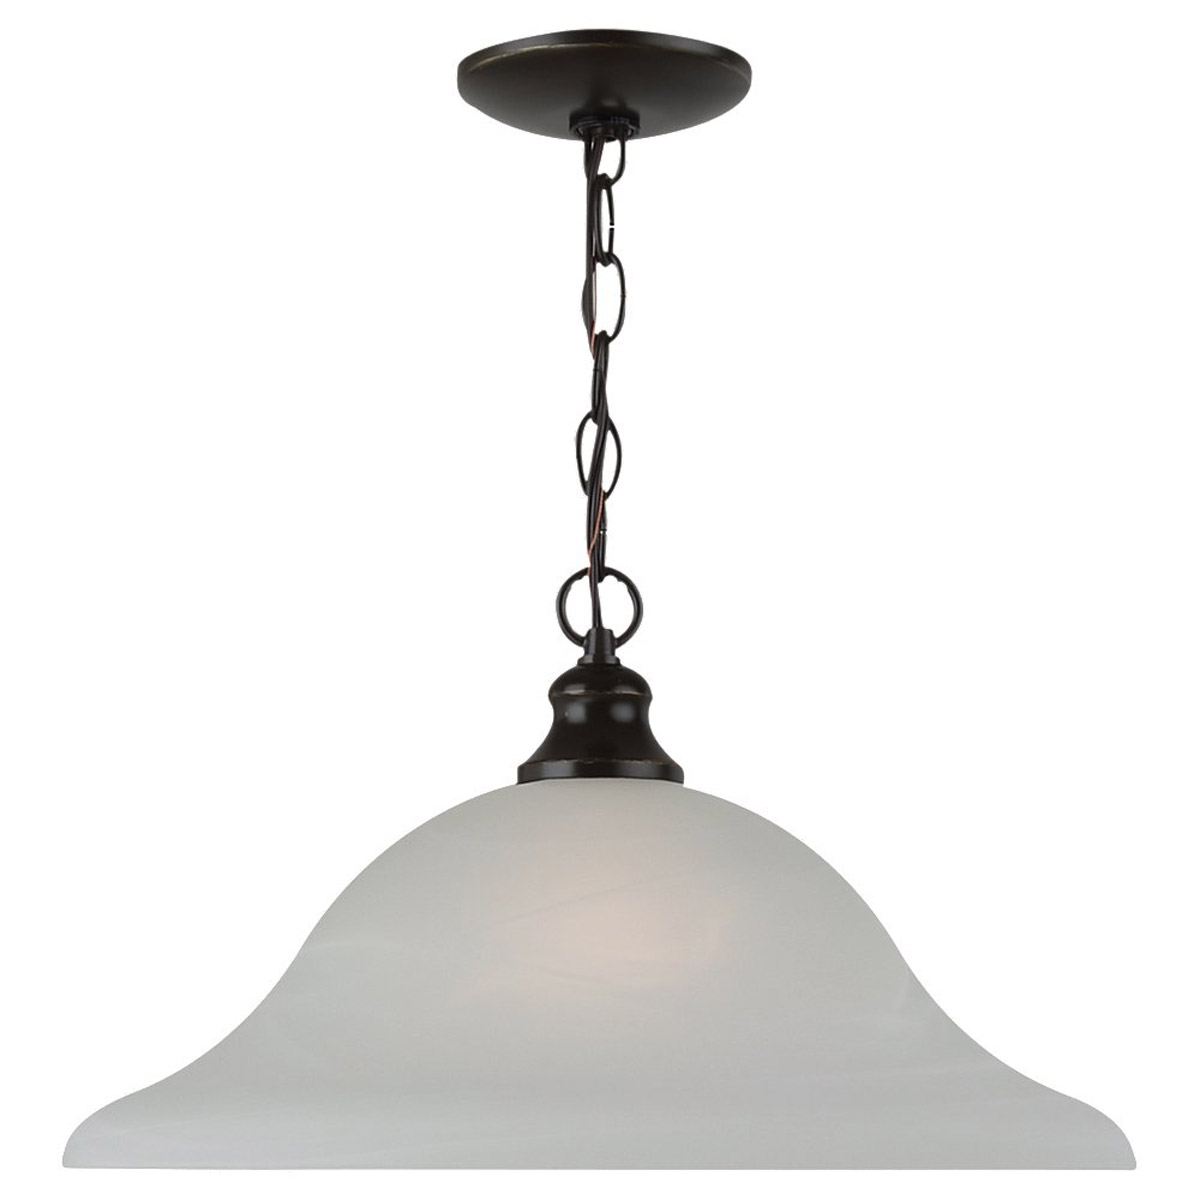 Sea Gull 65940-782 Windgate 1 Light 13 inch Heirloom Bronze Pendant Ceiling Light photo